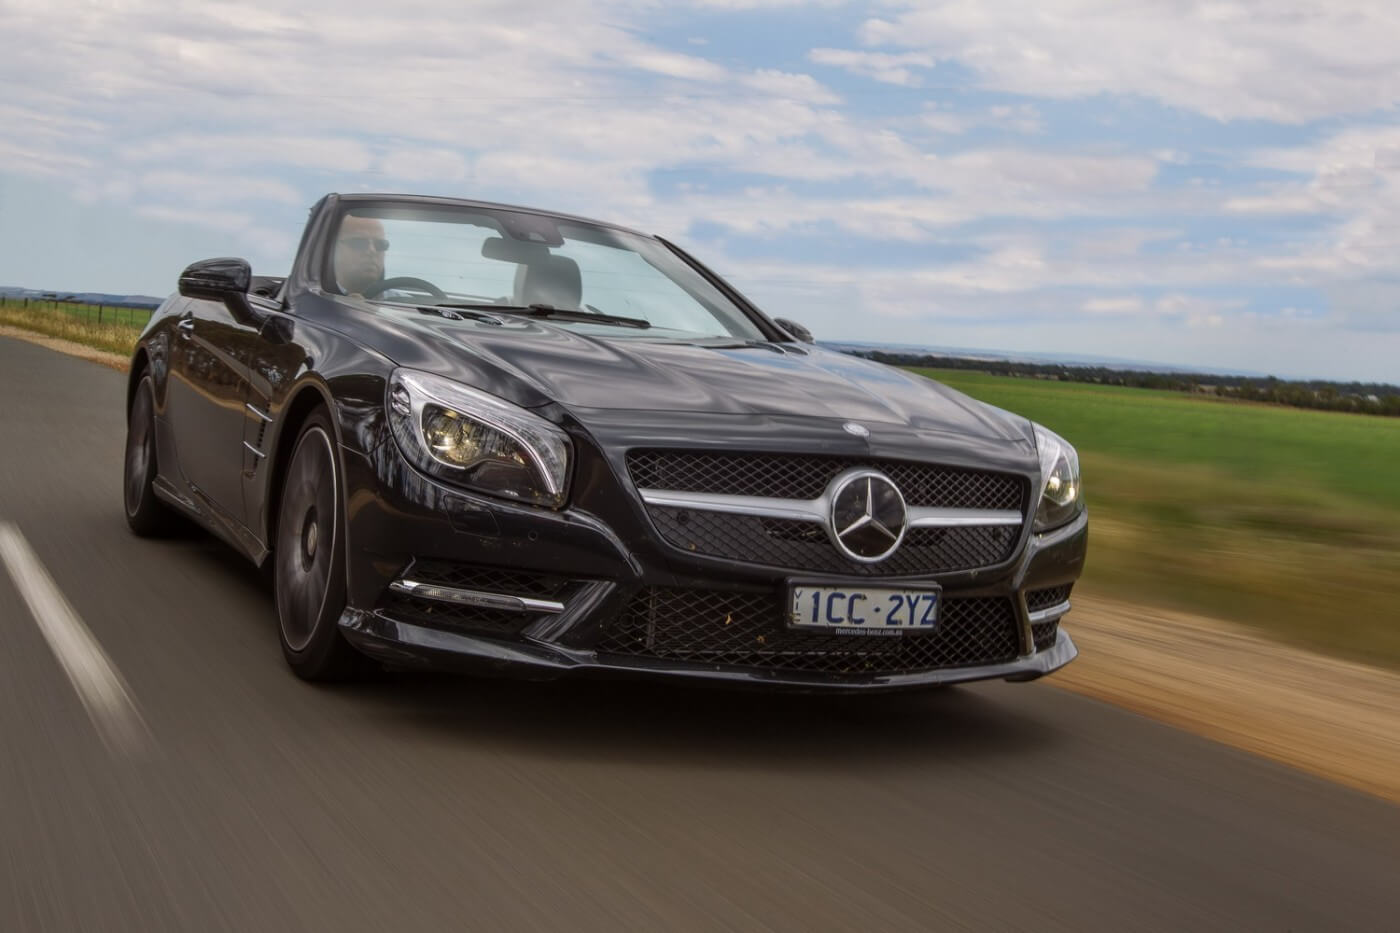 2015 mercedes benz sl400 review practical motoring for Mercedes benz mbrace cost